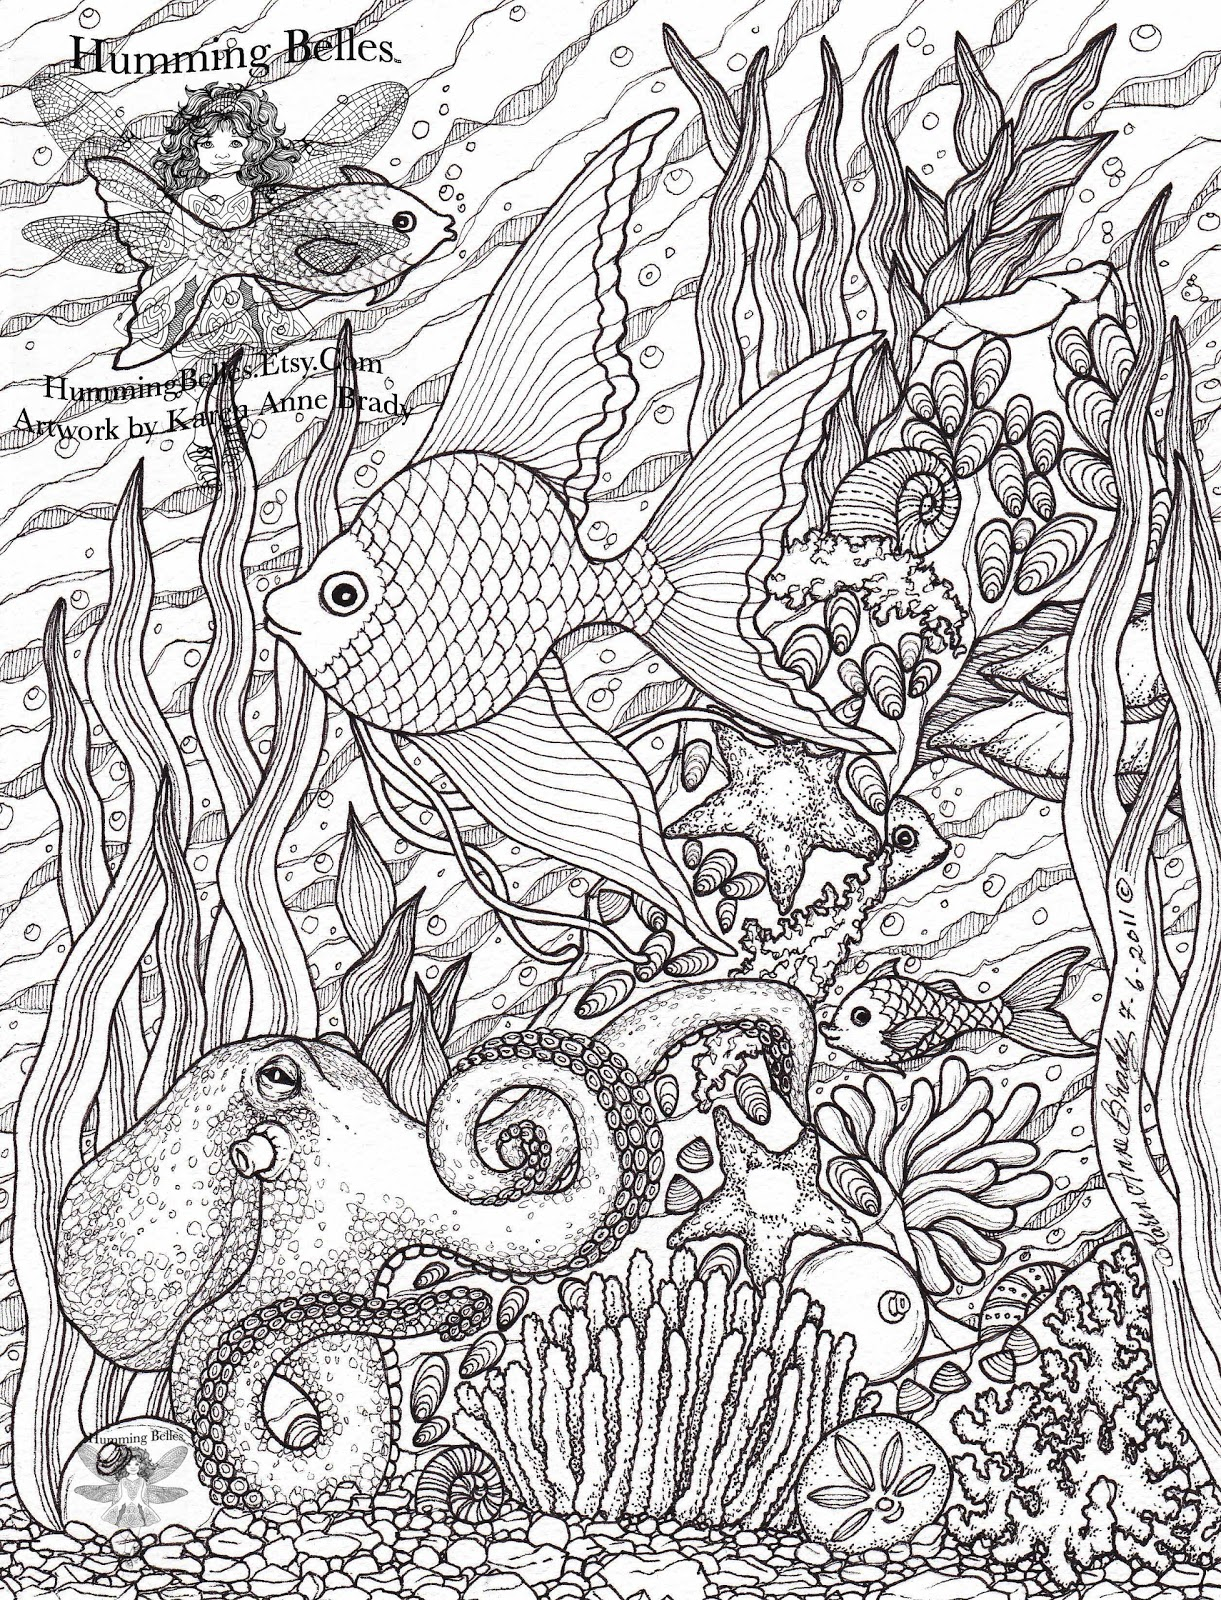 Humming Belles New Undersea Illustrations And Coloring Pages